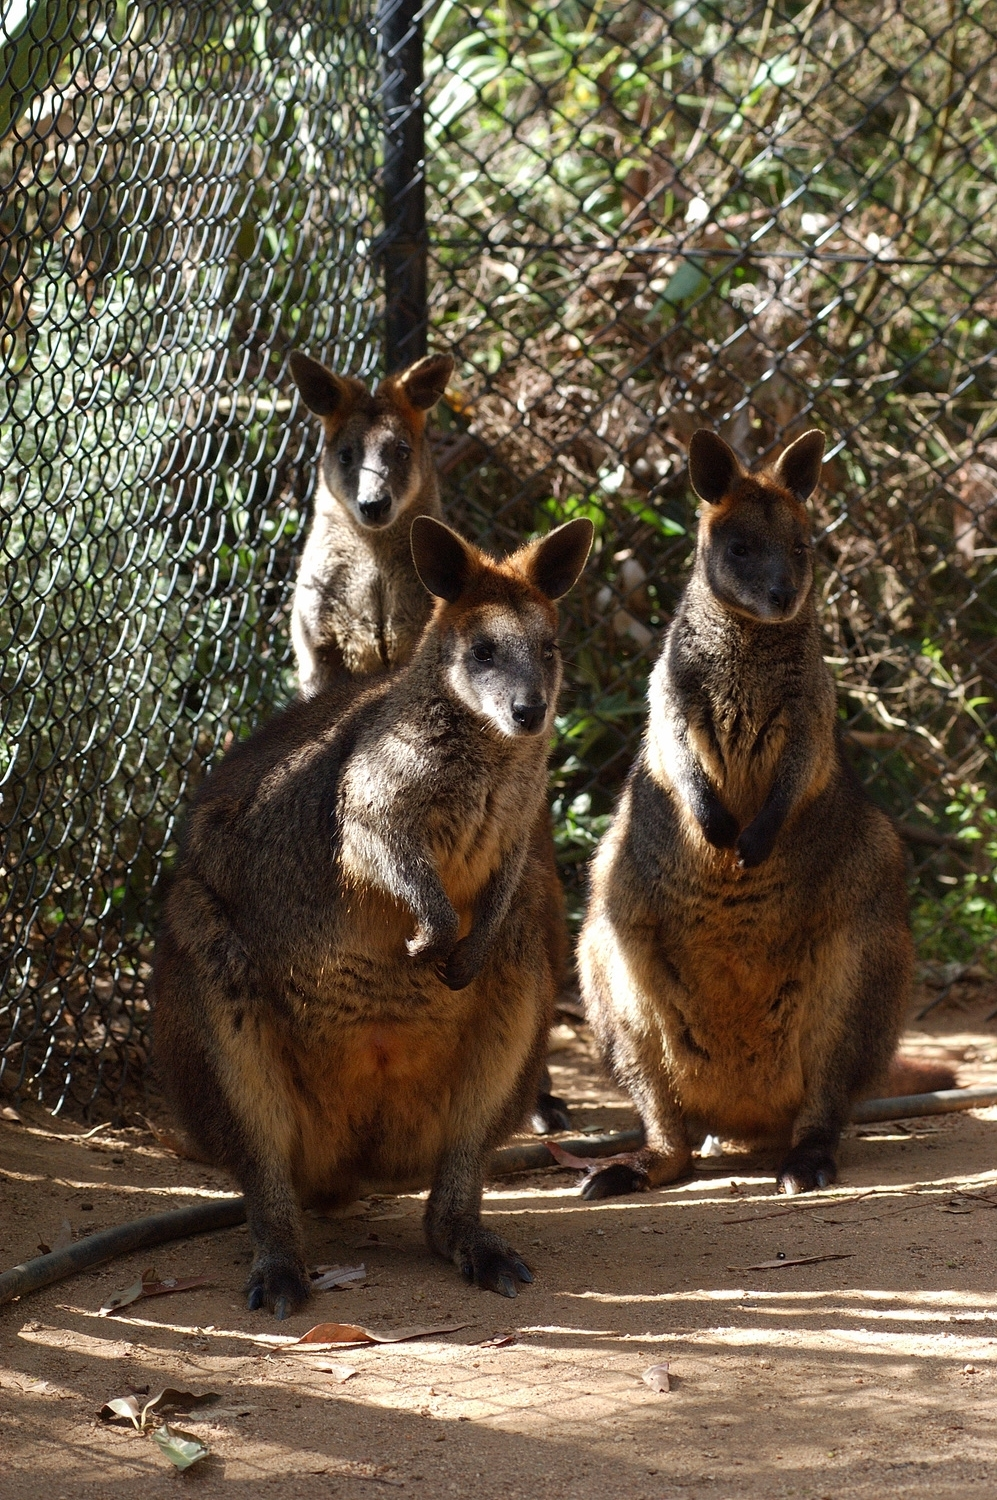 These little wallabies were not only not threatening, they seemed a little shy standing in their corner.